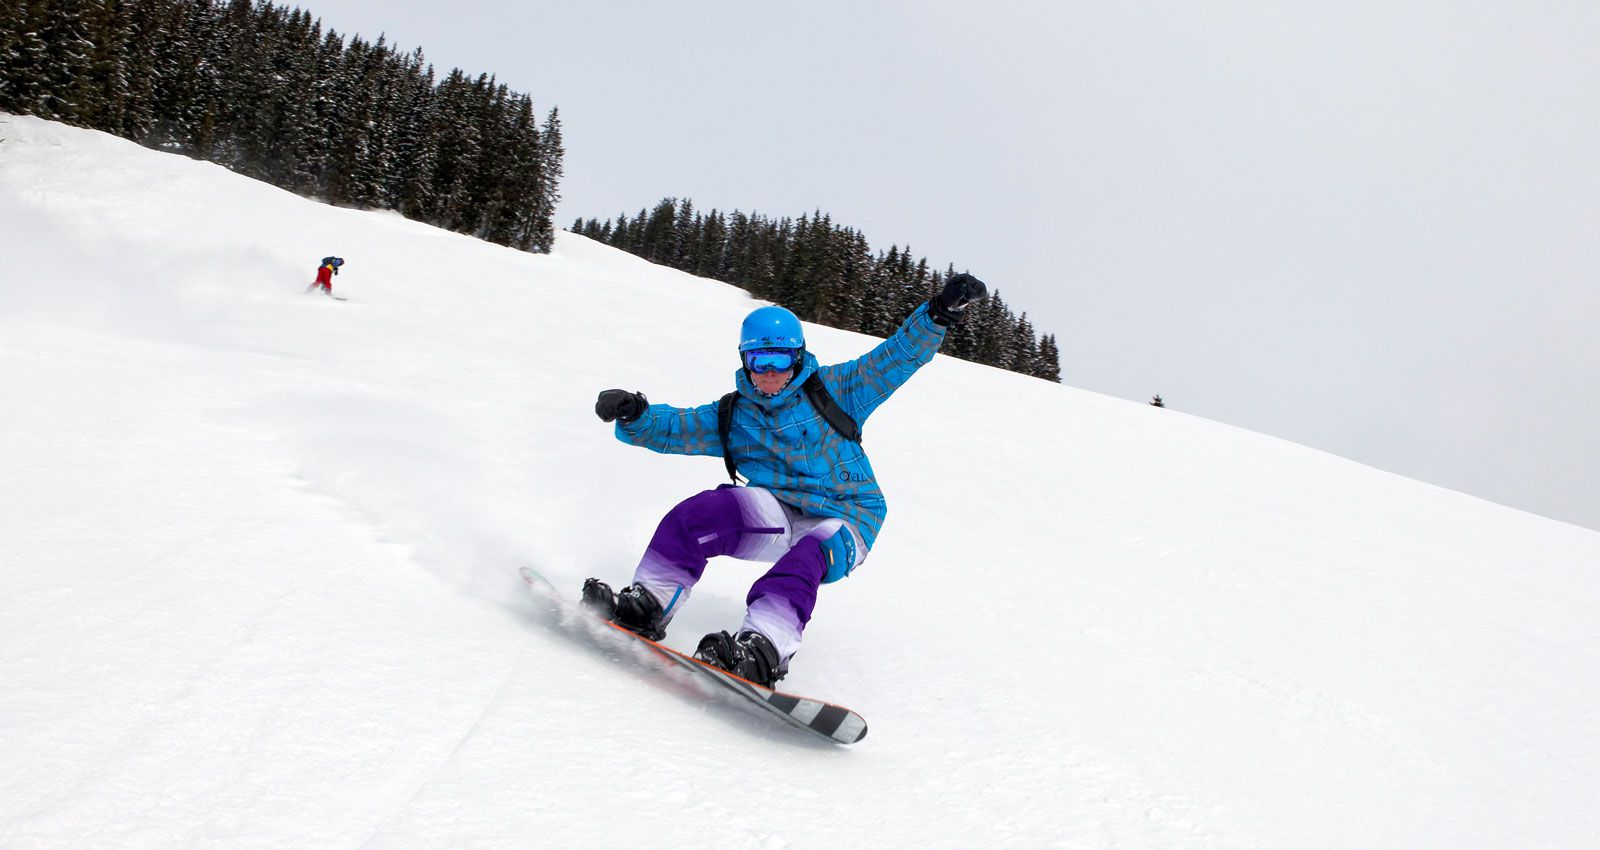 PGL Adventure Holidays - Specialist Holidays for 7-17 year olds across the UK and France - Overseas Explorer – Snowboarding